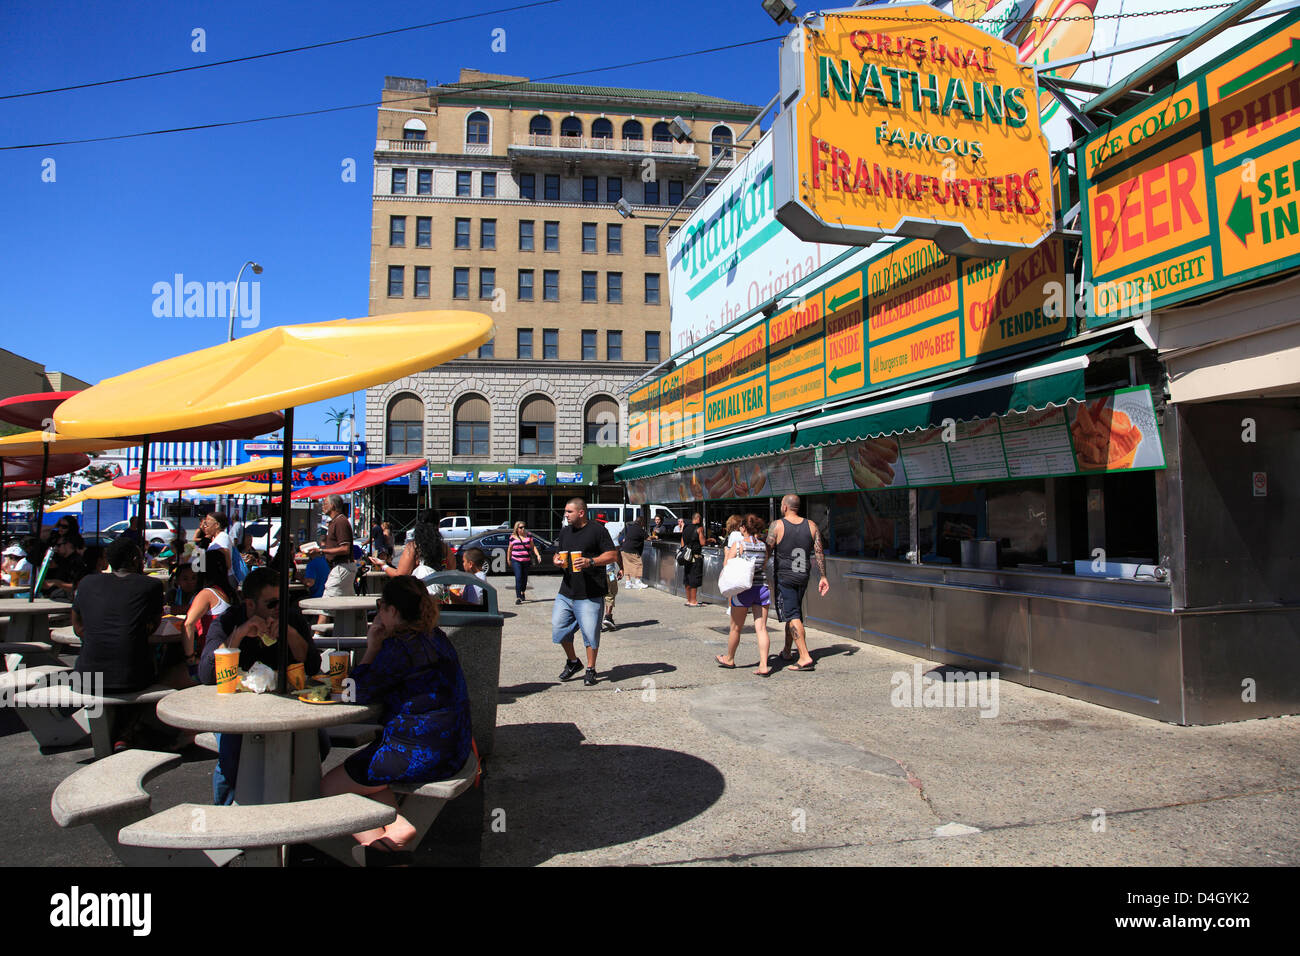 Nathans Famous Hot Dogs, Coney Island, Brooklyn, New York City, USA - Stock Image